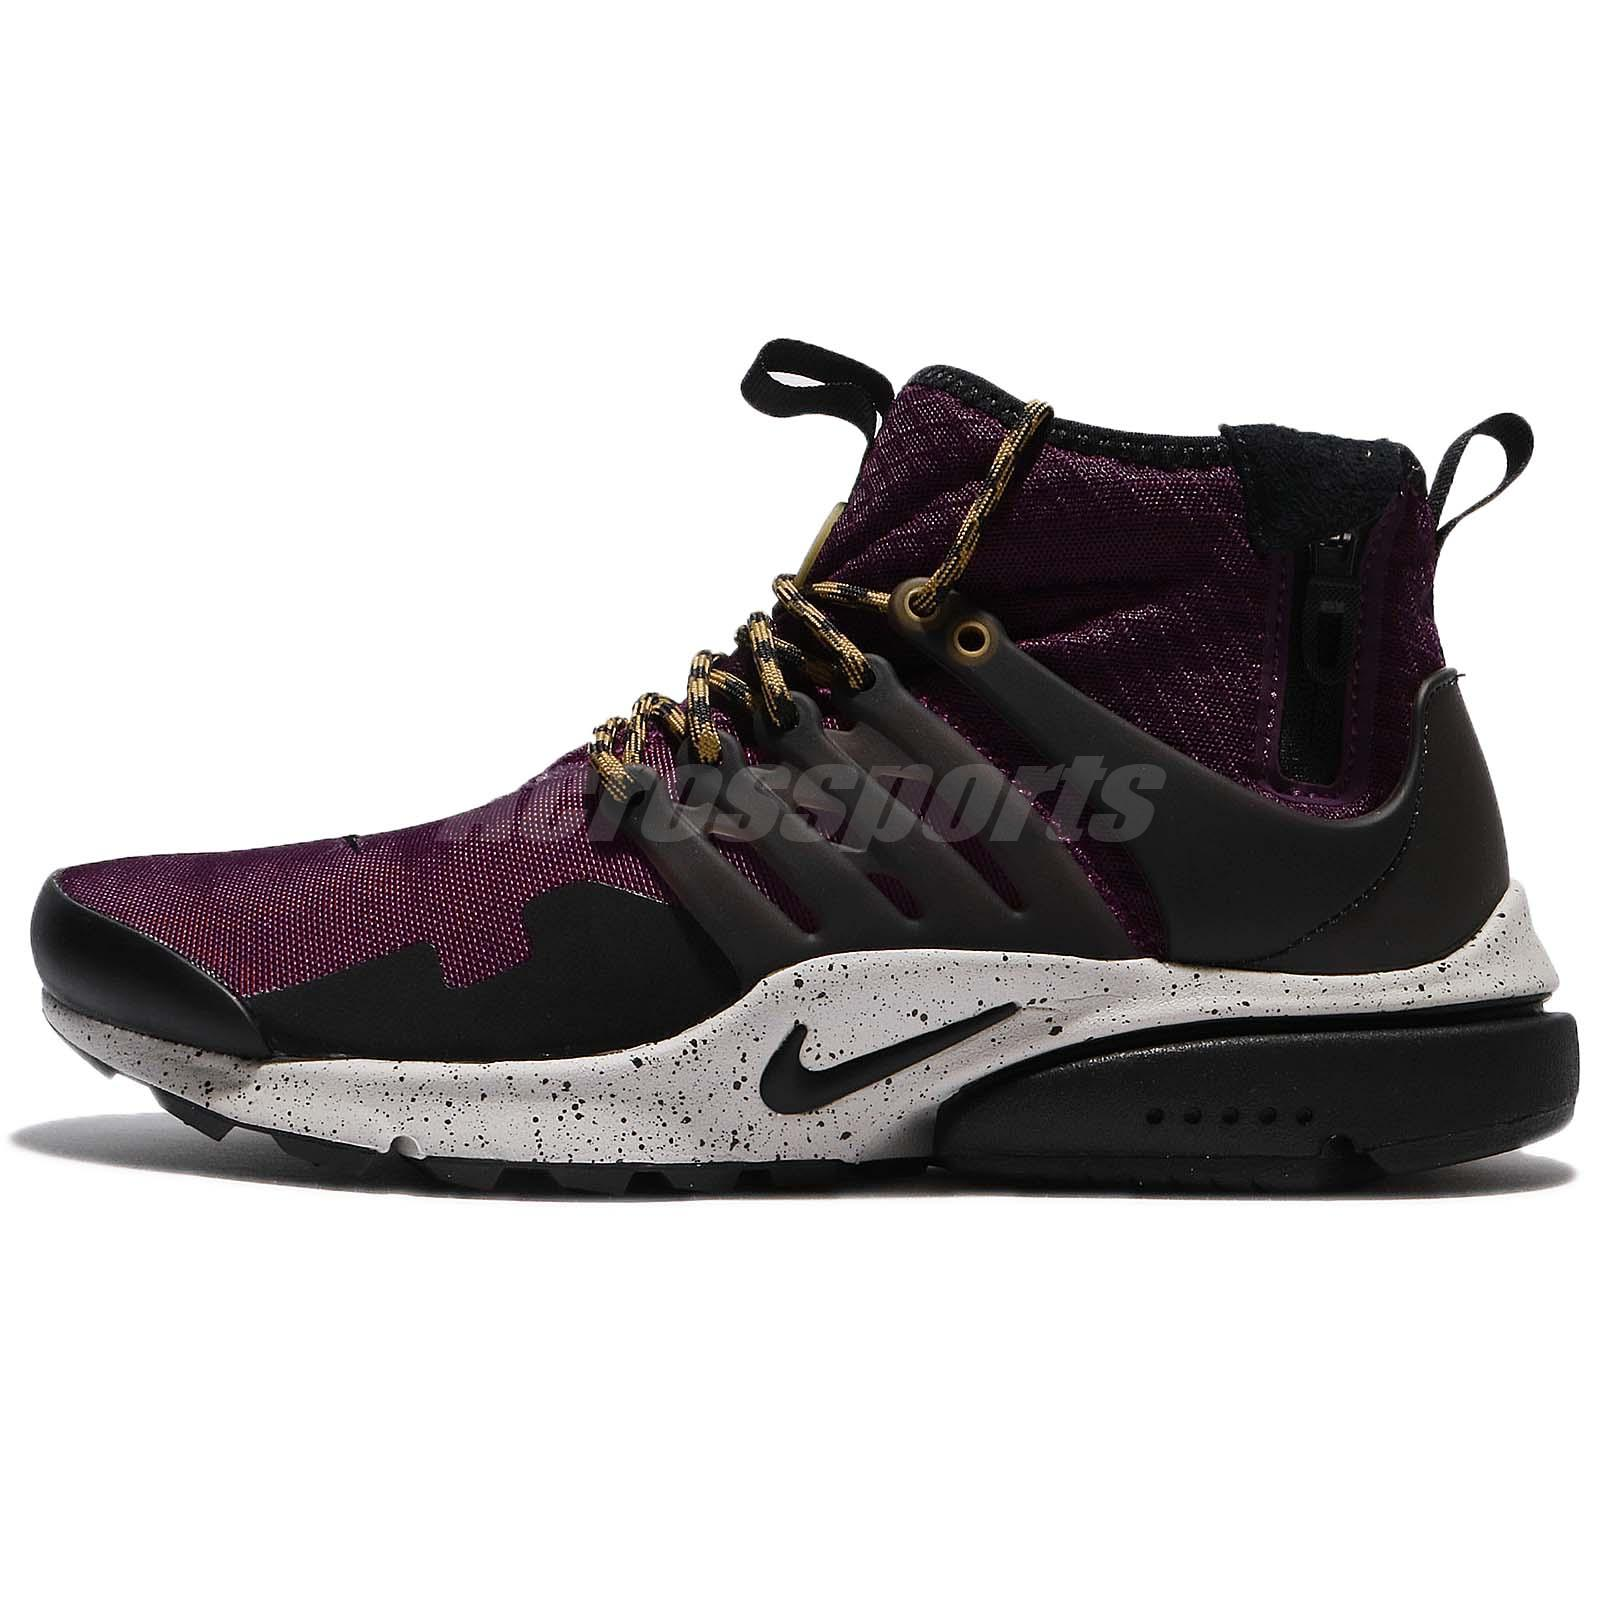 pretty nice 17710 59acc Nike Air Presto Mid Utility Bordeaux Black Desert Moss Zip Men Shoes 859524- 600